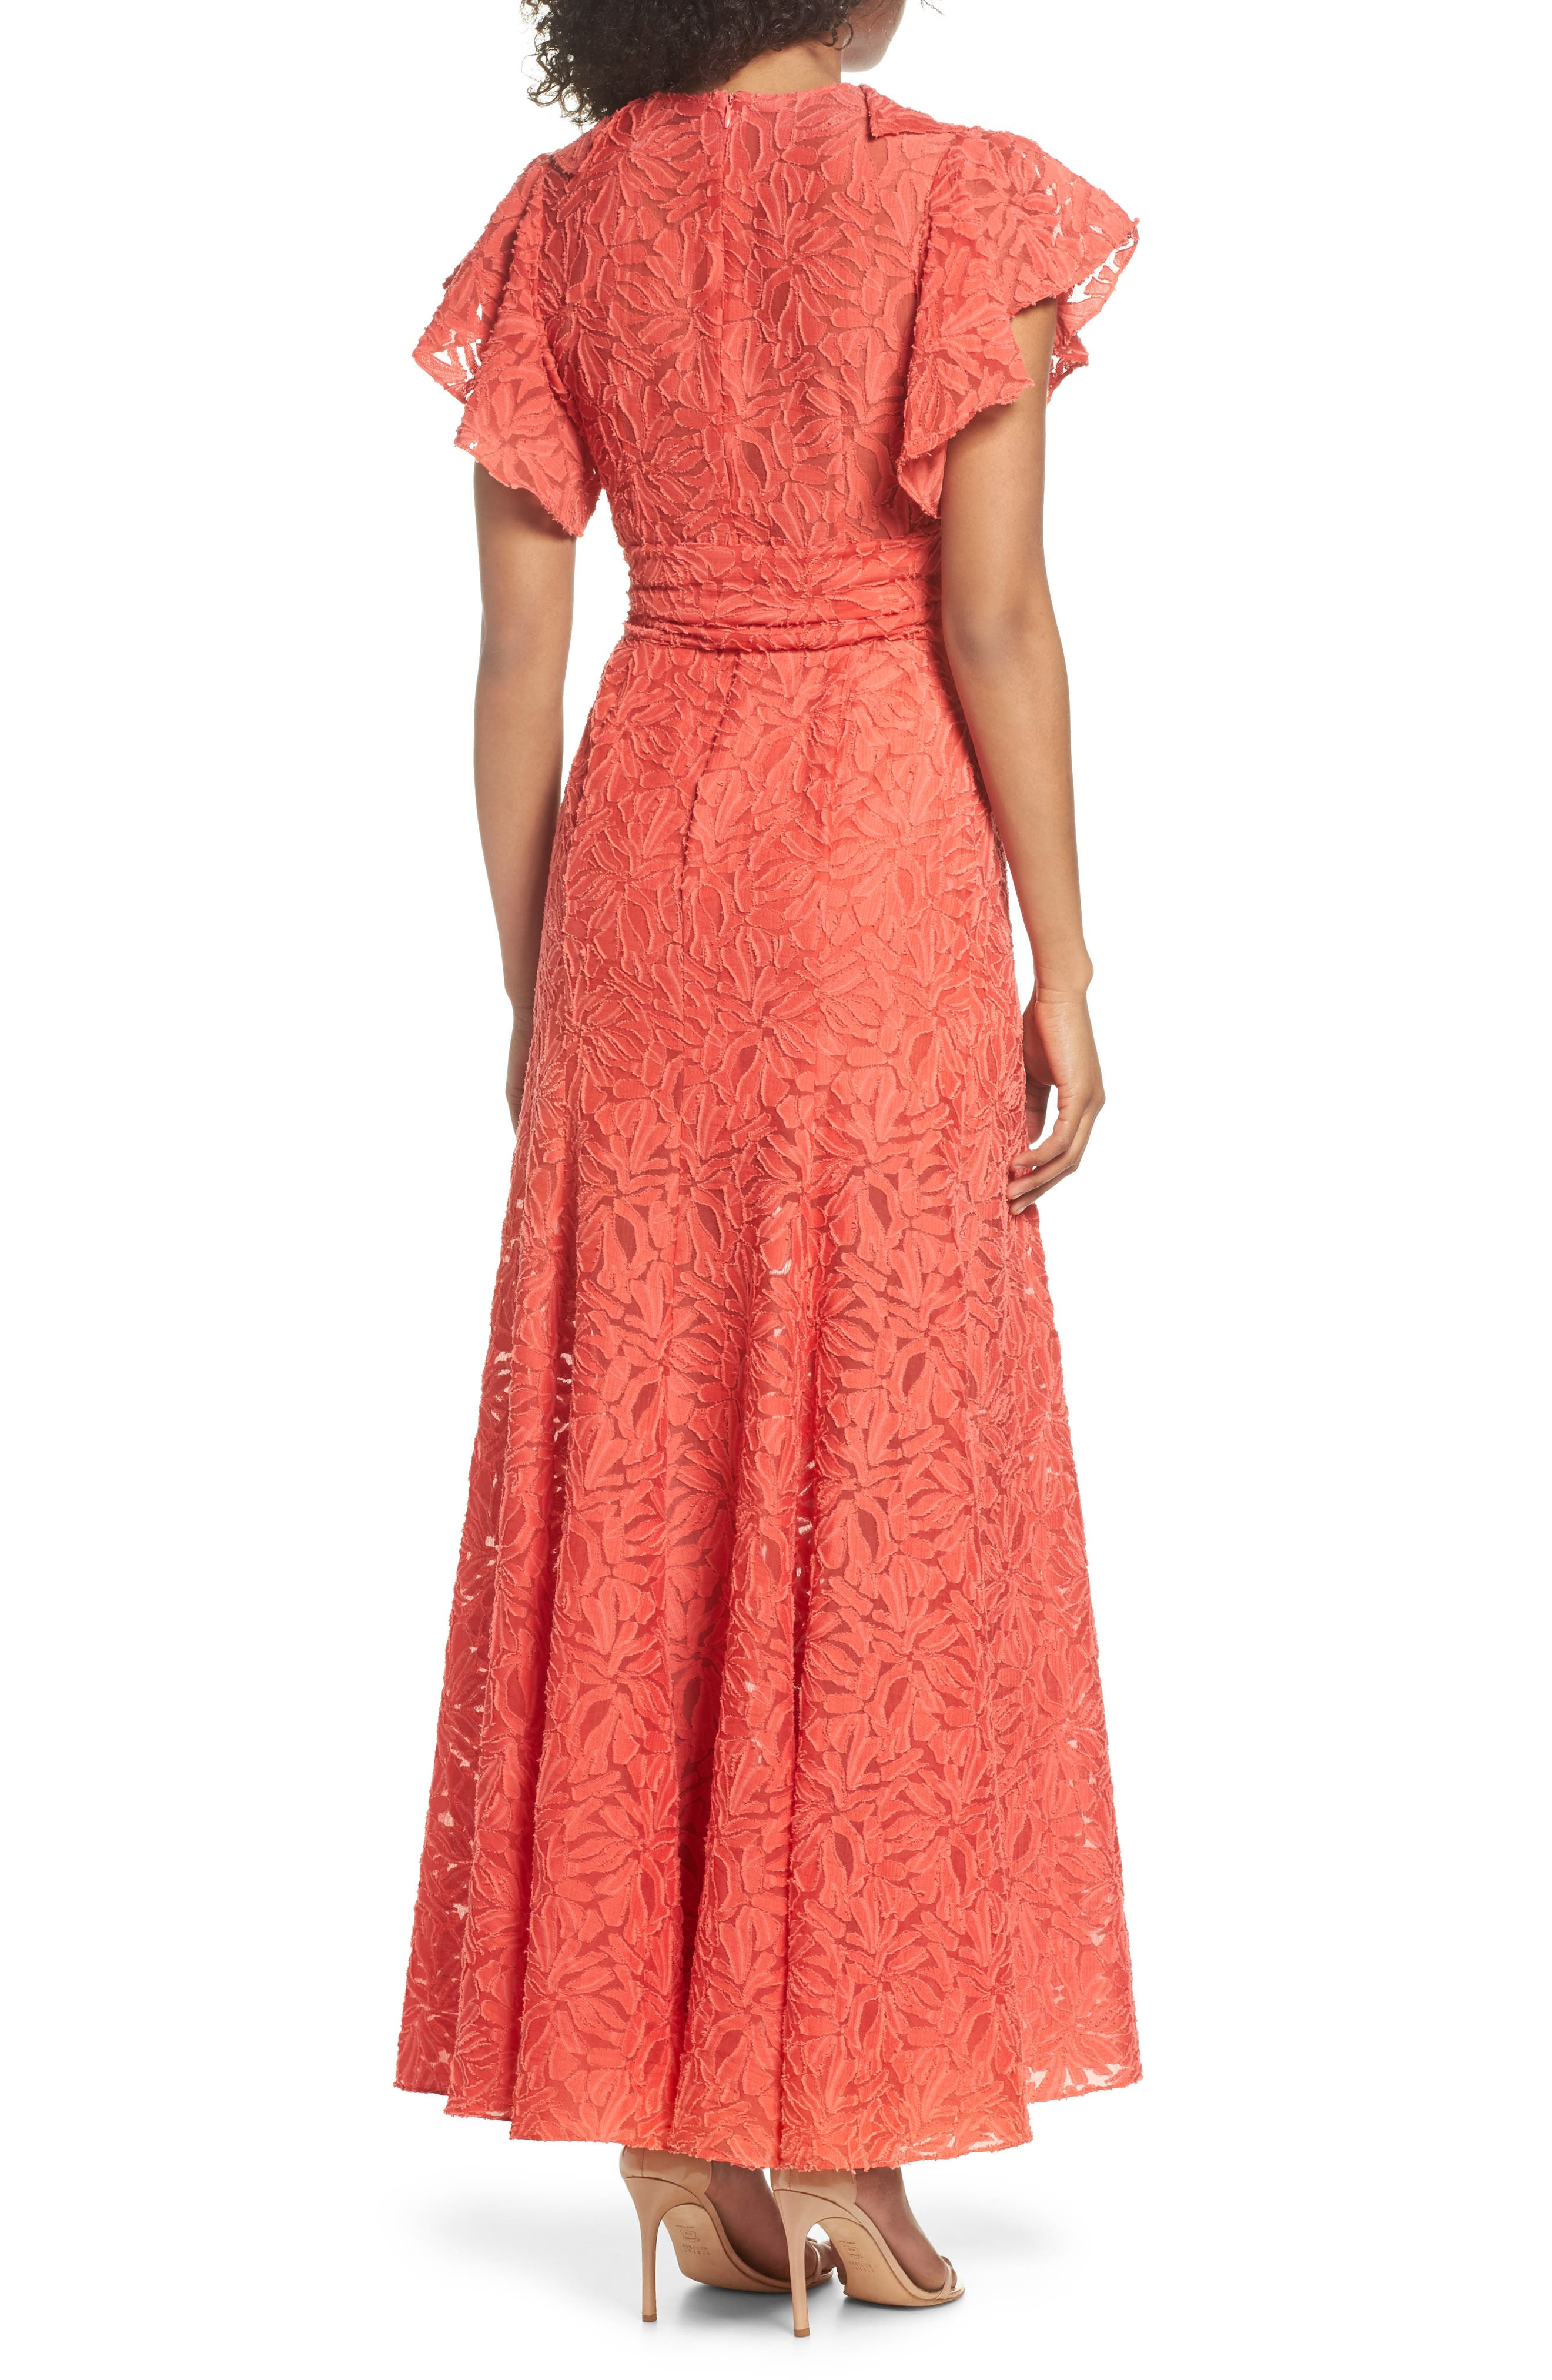 More To Give Ruffle Lace Gown,                             Alternate thumbnail 2, color,                             624